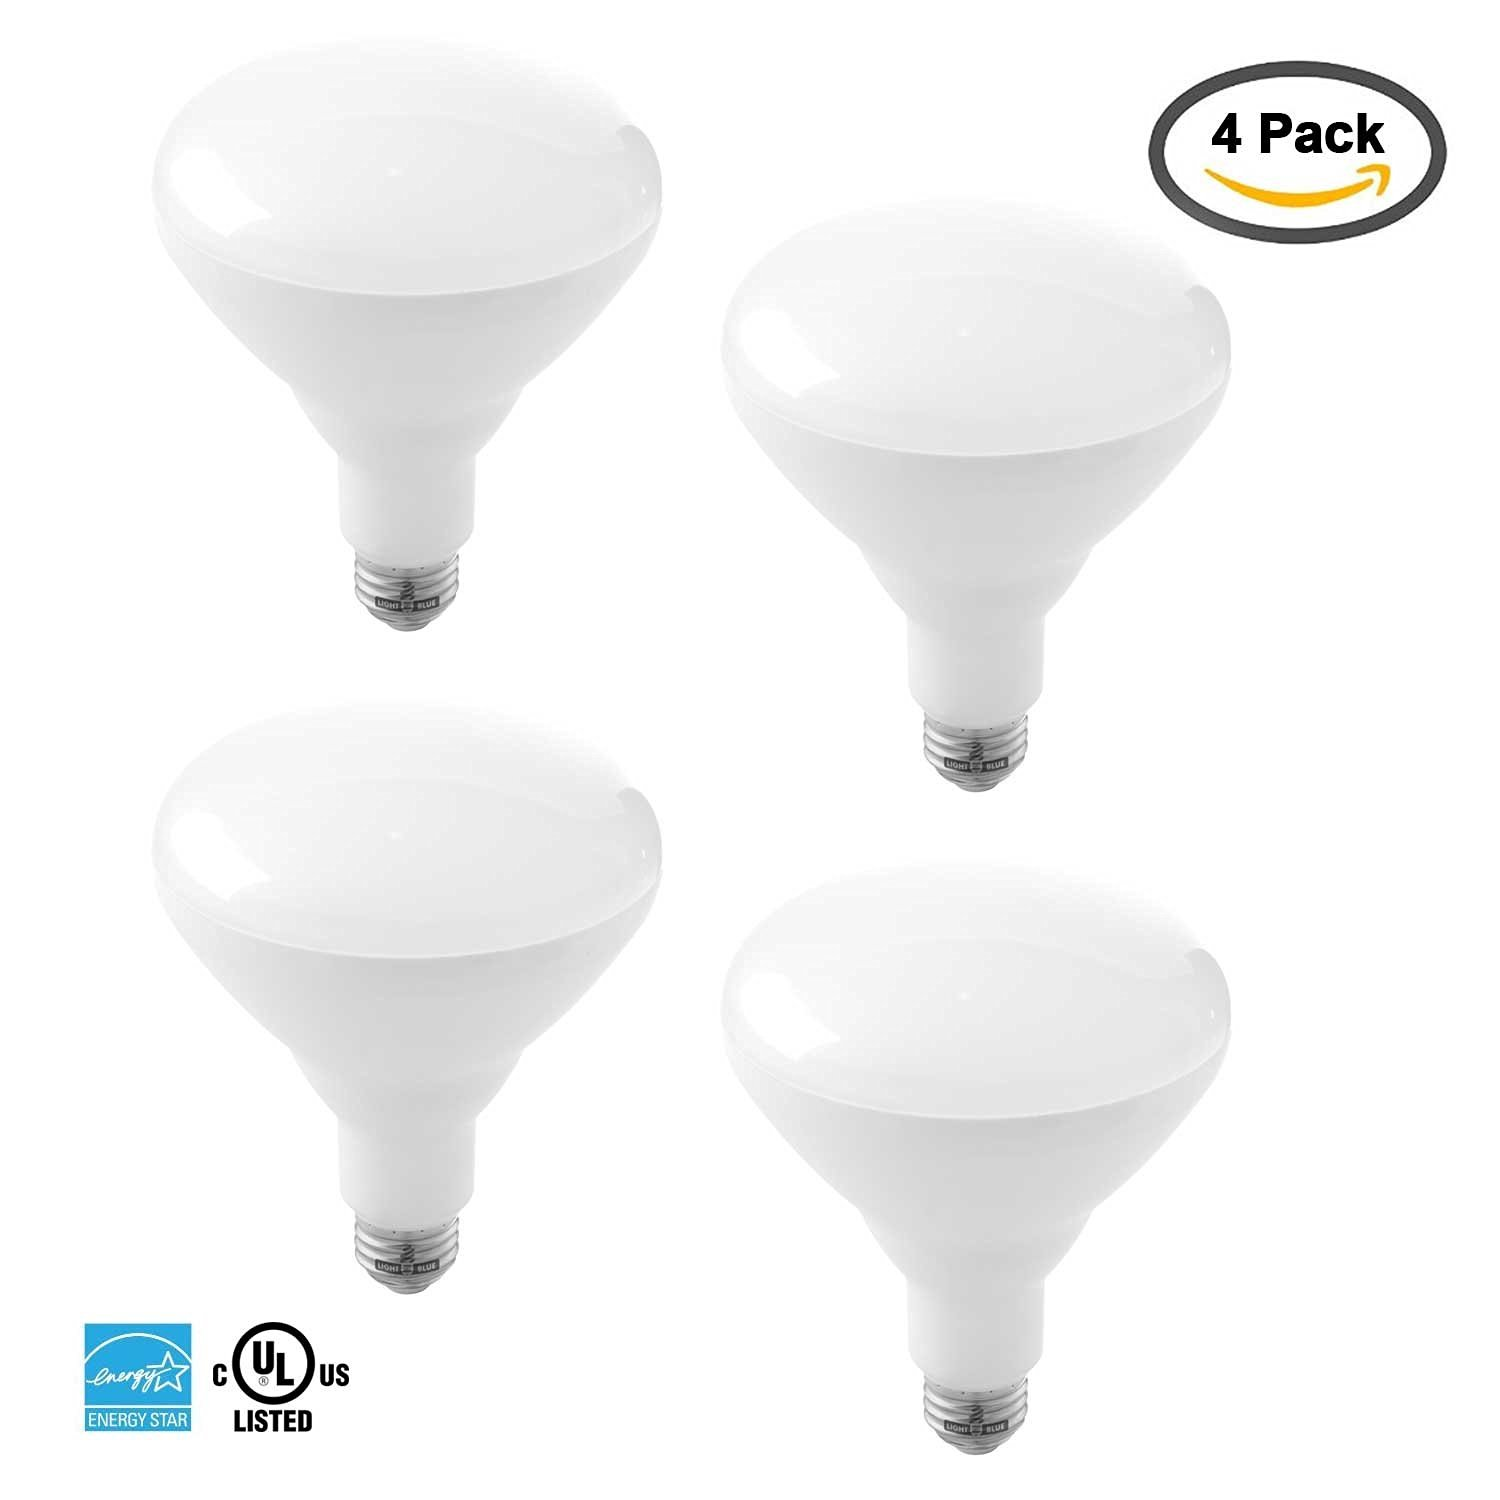 Light Blue™ BR40 LED Bulb, 15 Watt (85W equivalent), Soft White 2700K, Flood Light Bulb, 1200 Lumens, Dimmable, UL-Listed Energy Star-Qualified (Pack of 4)